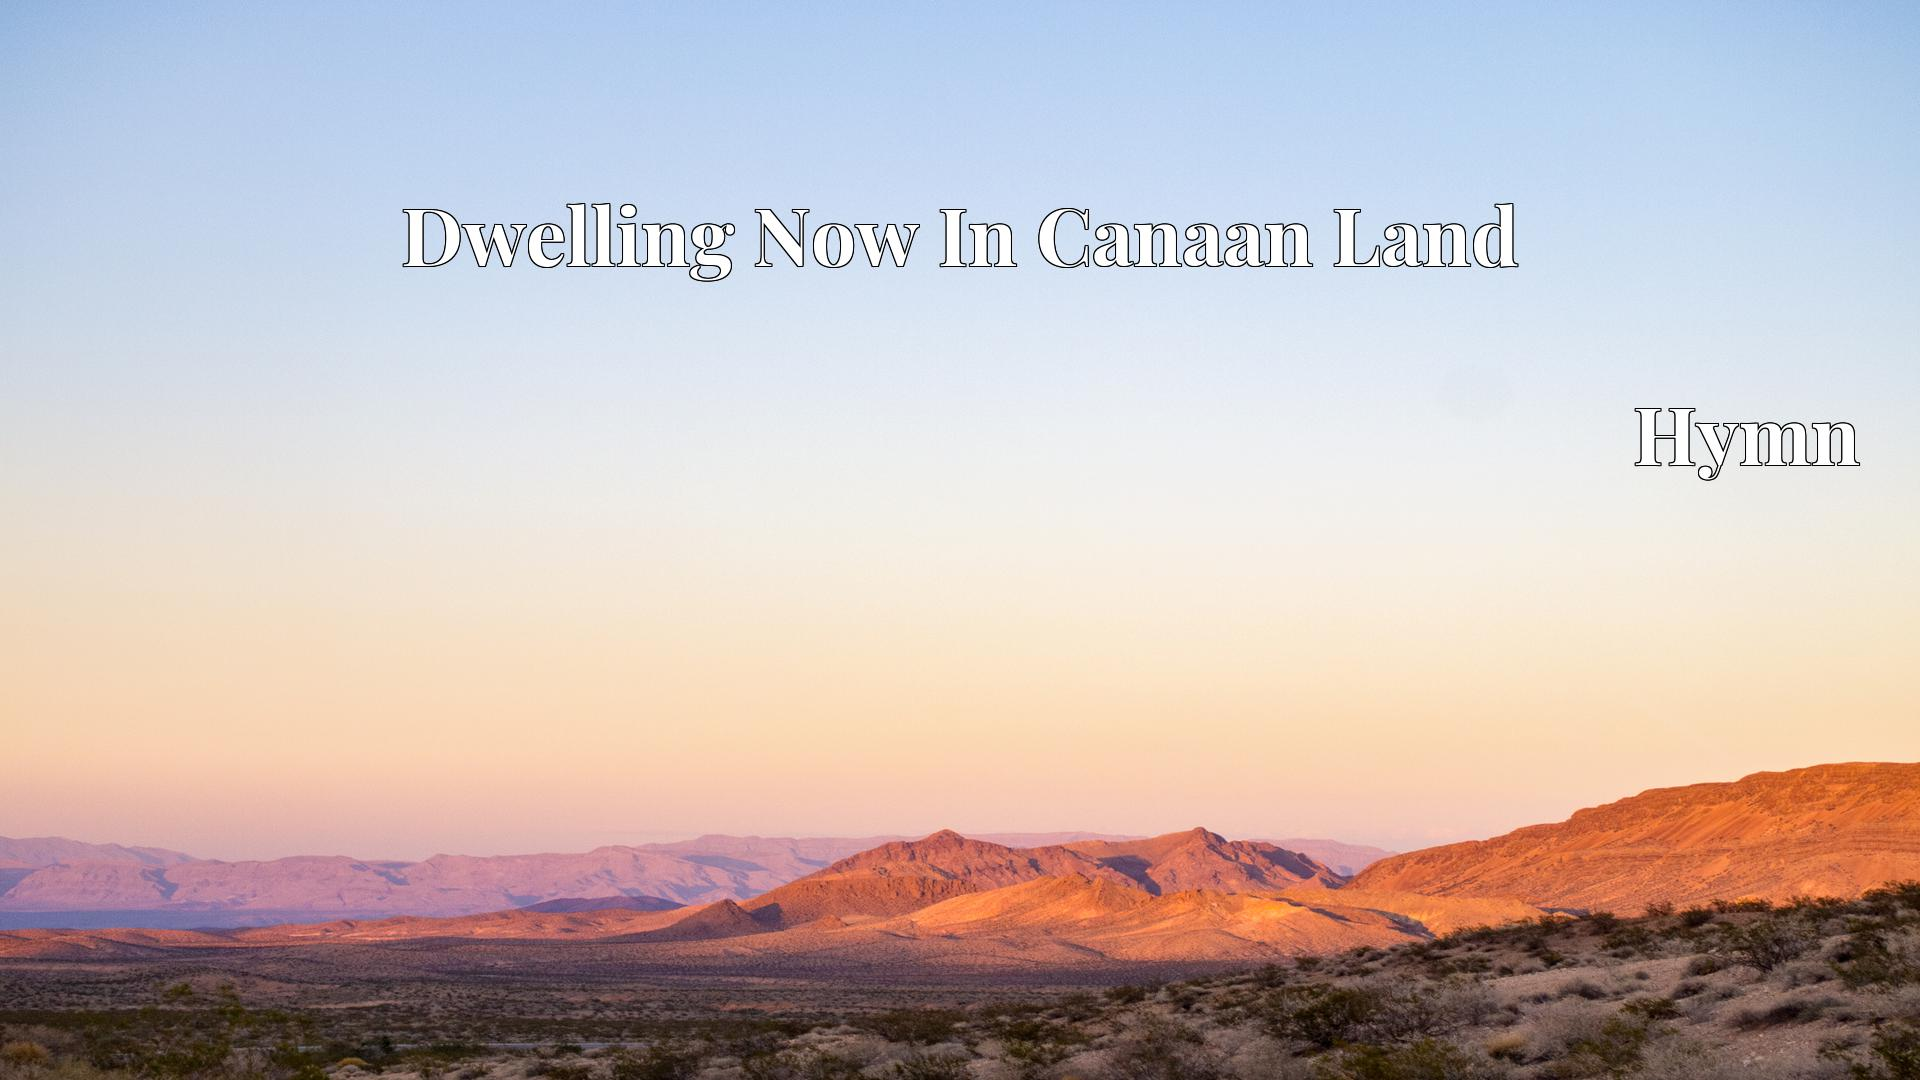 Dwelling Now In Canaan Land - Hymn